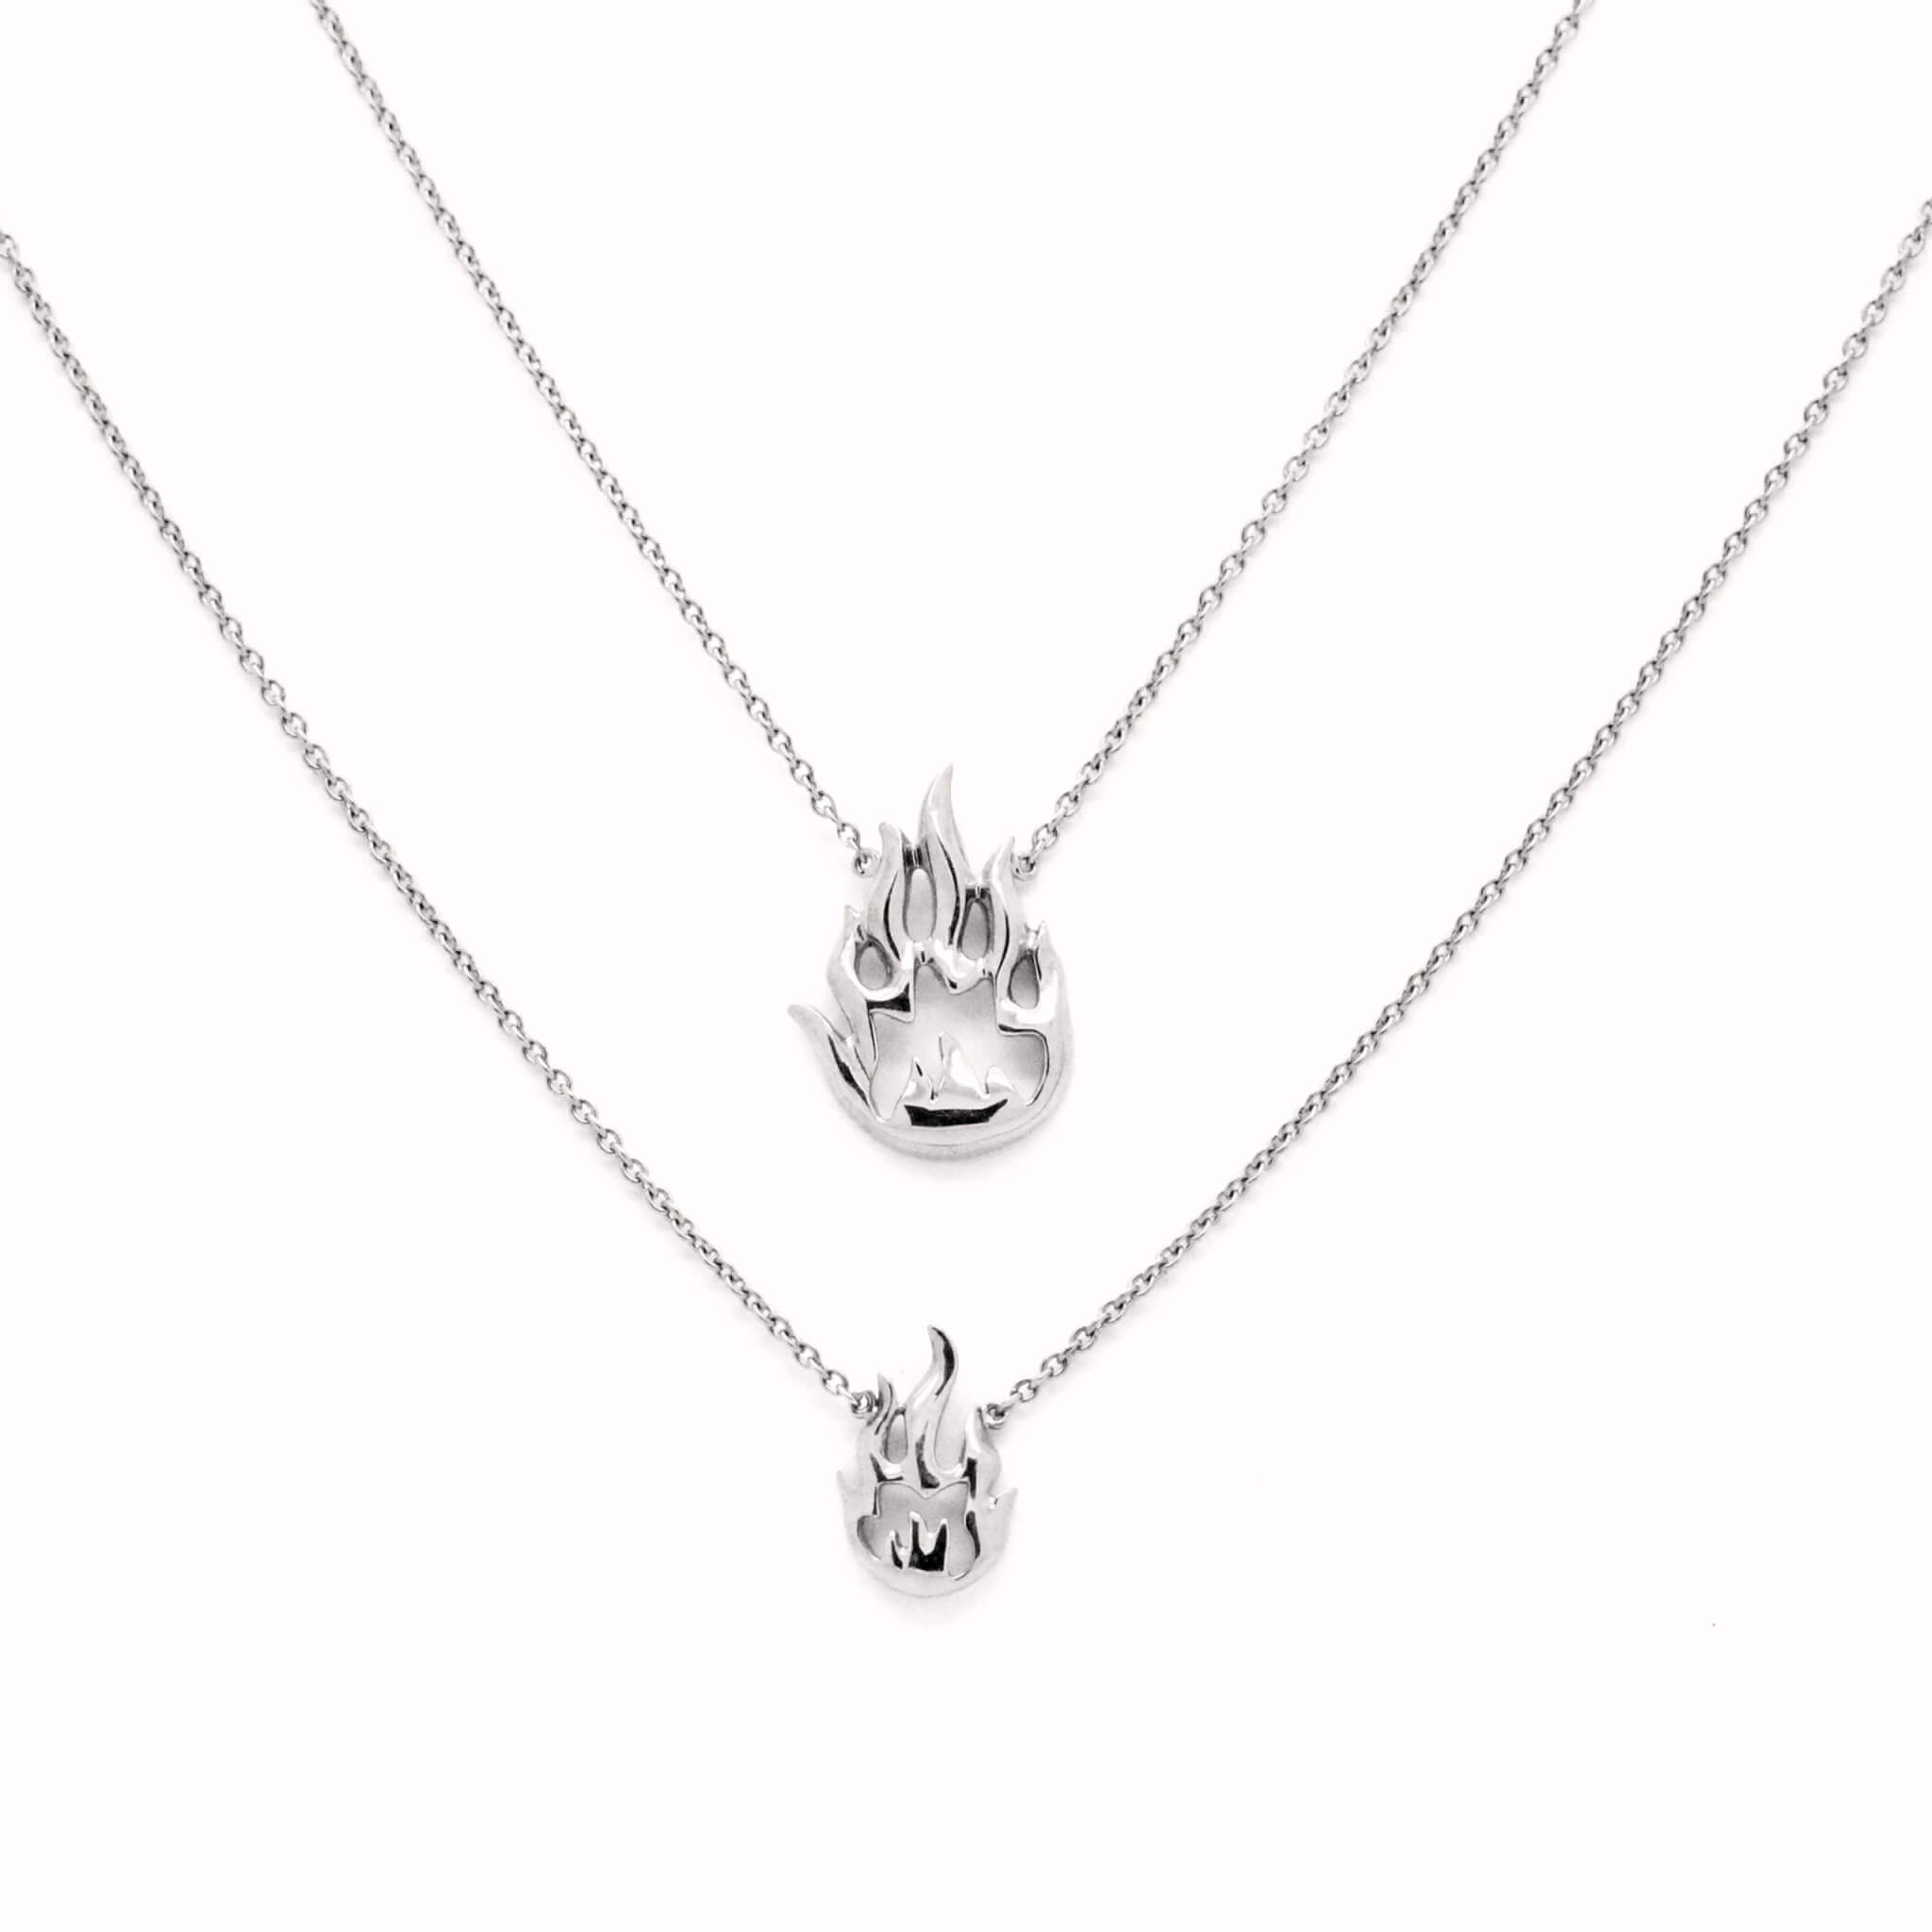 Flamme collier double or blanc